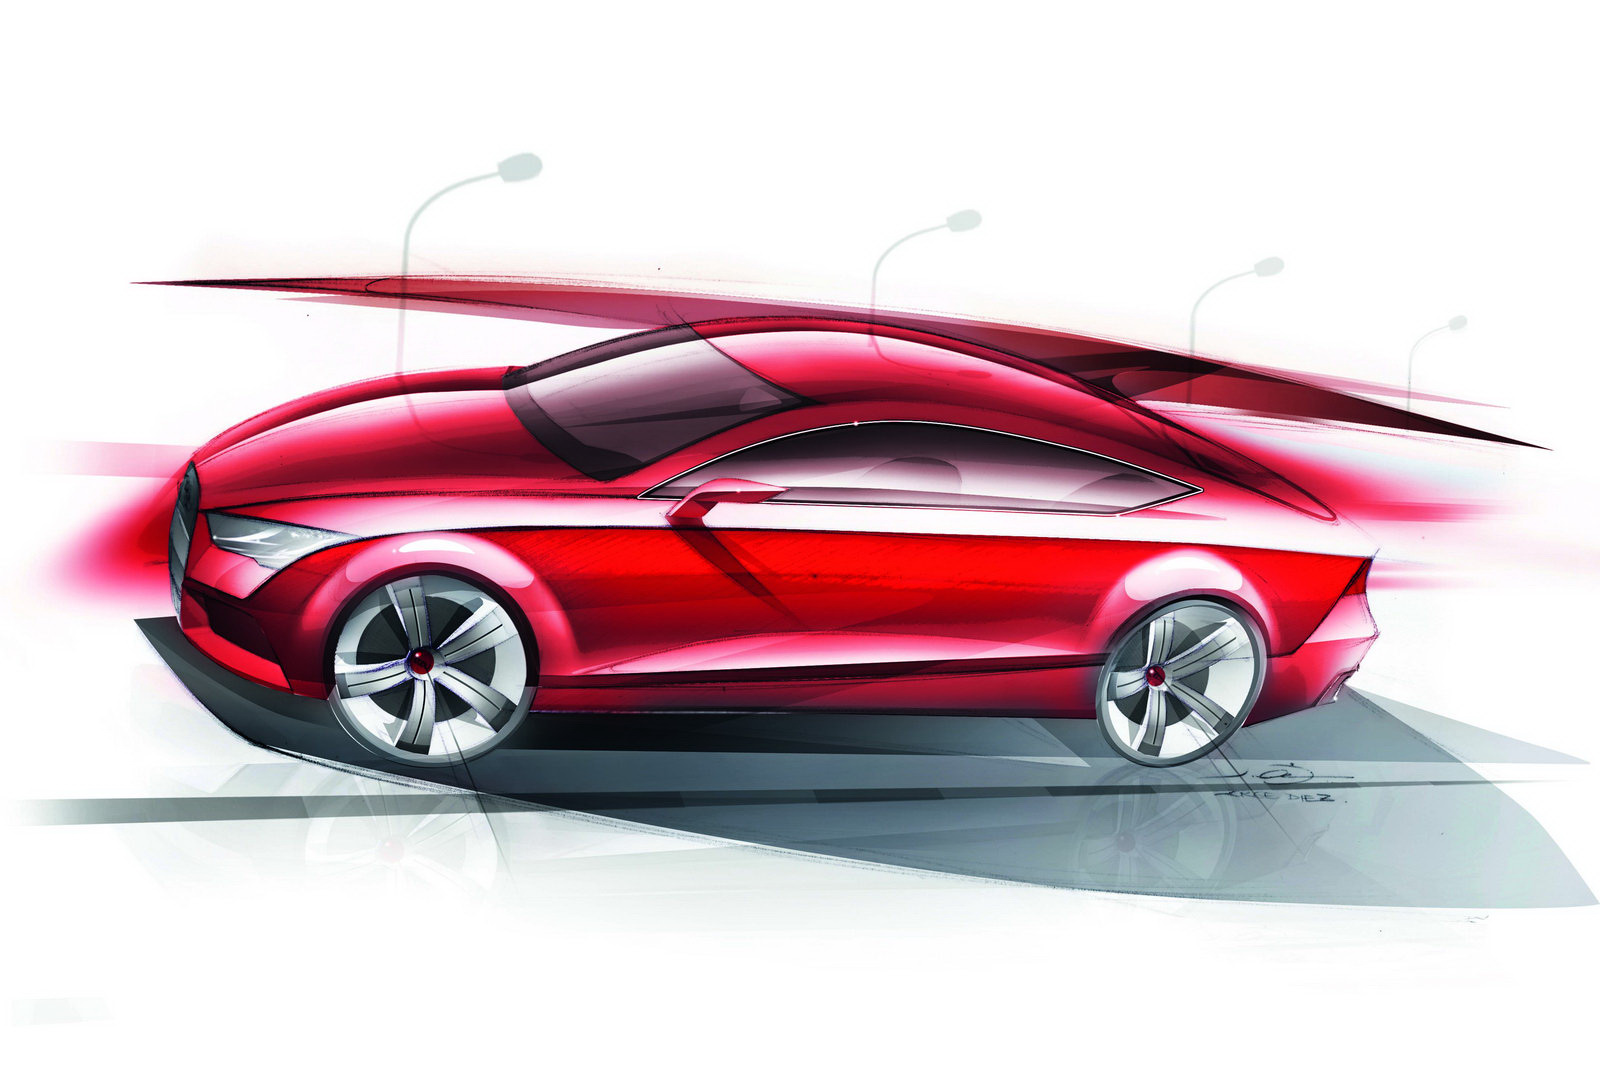 Exterior Drawings 4 6 Audi A7 Sportback 2011 Http